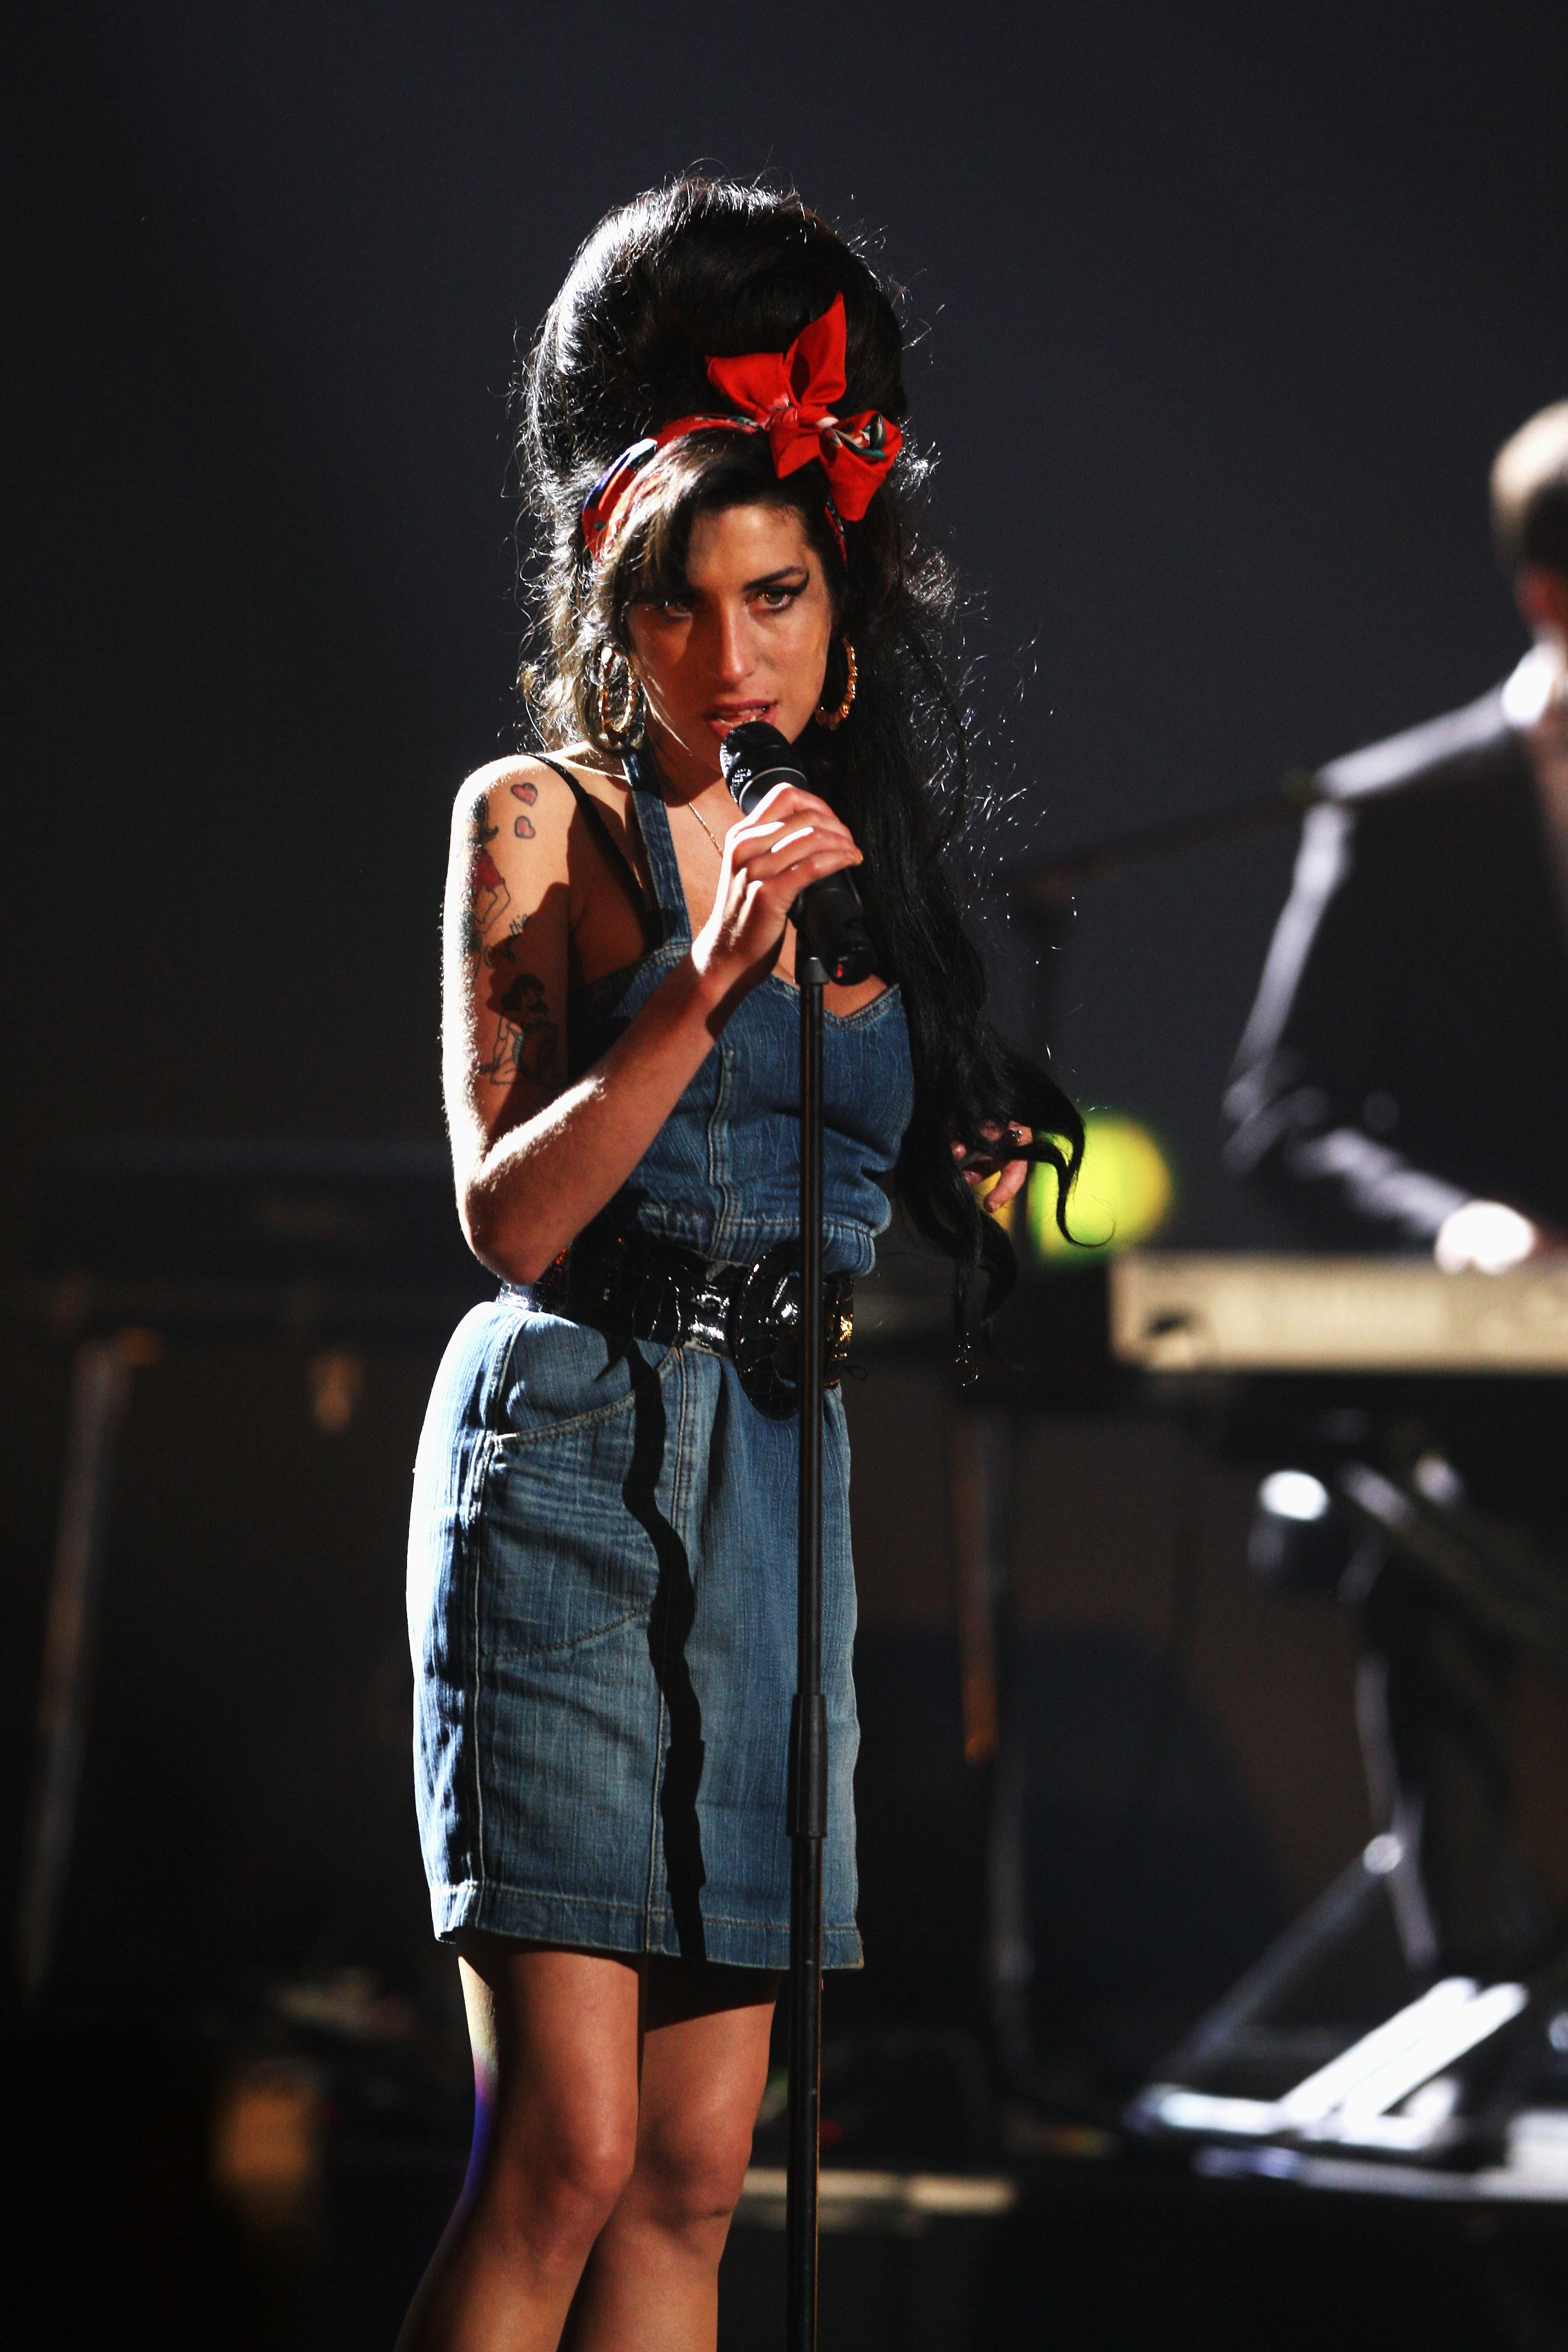 MUNICH, GERMANY - NOVEMBER 01:  Amy Winehouse performs during the show at the MTV Europe Music Awards 2007 at the Olympiahalle on November 1, 2007 in Munich, Germany.  (Photo by Sean Gallup/Getty Images for MTV) (Foto: Getty Images for MTV)